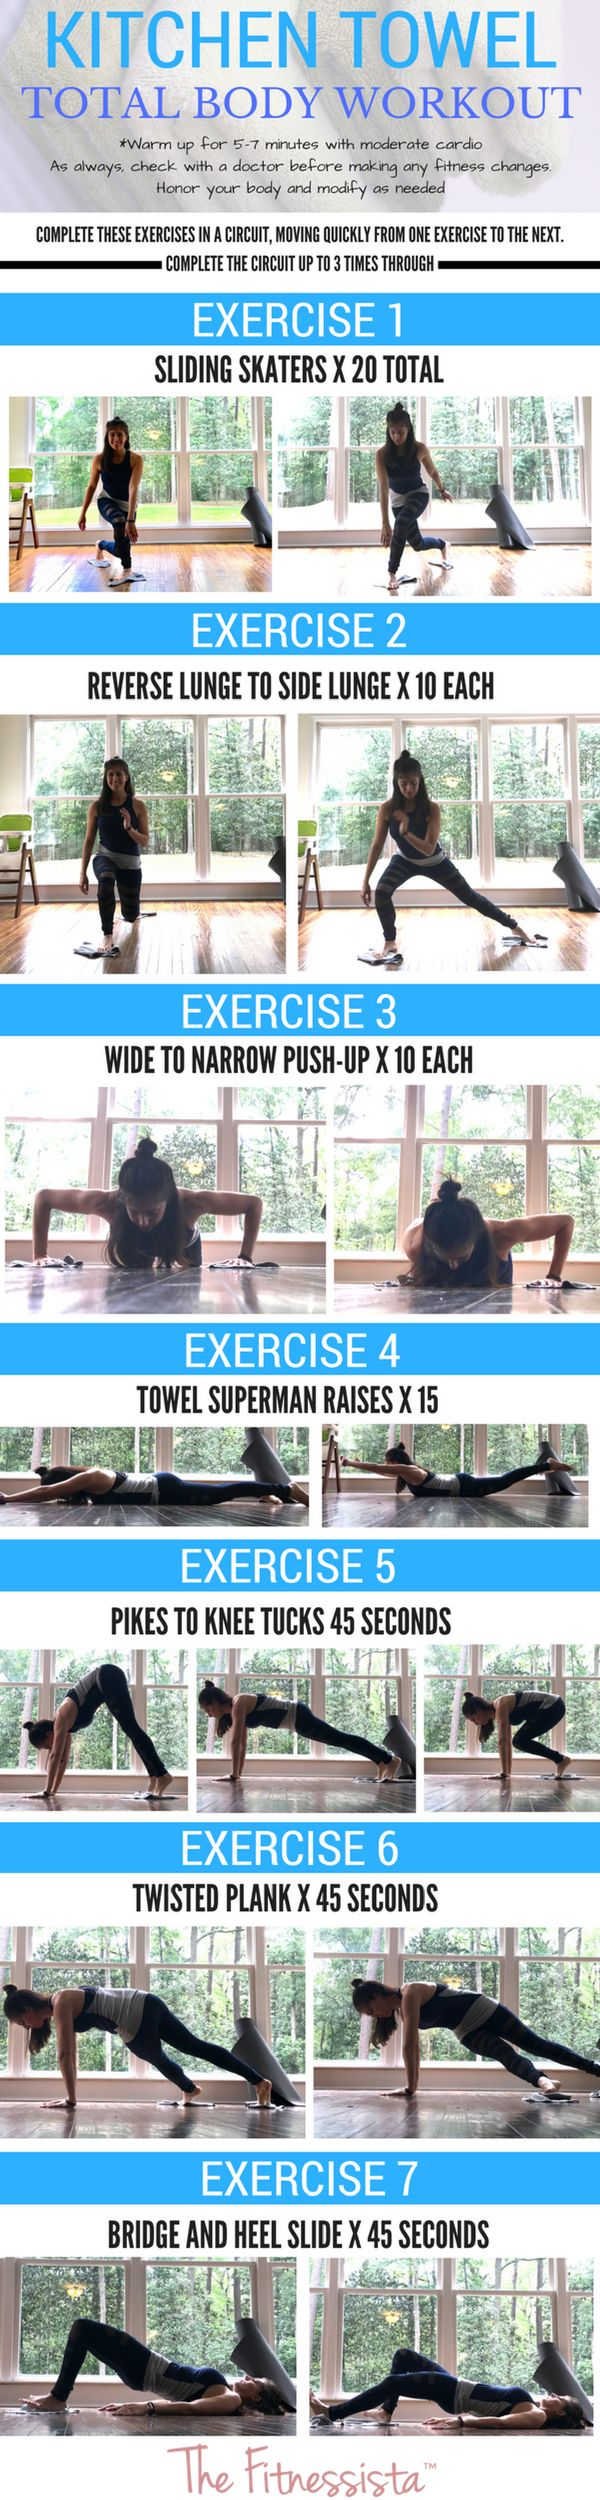 128 best Fitness images on Pinterest | Exercises, Exercise routines ...